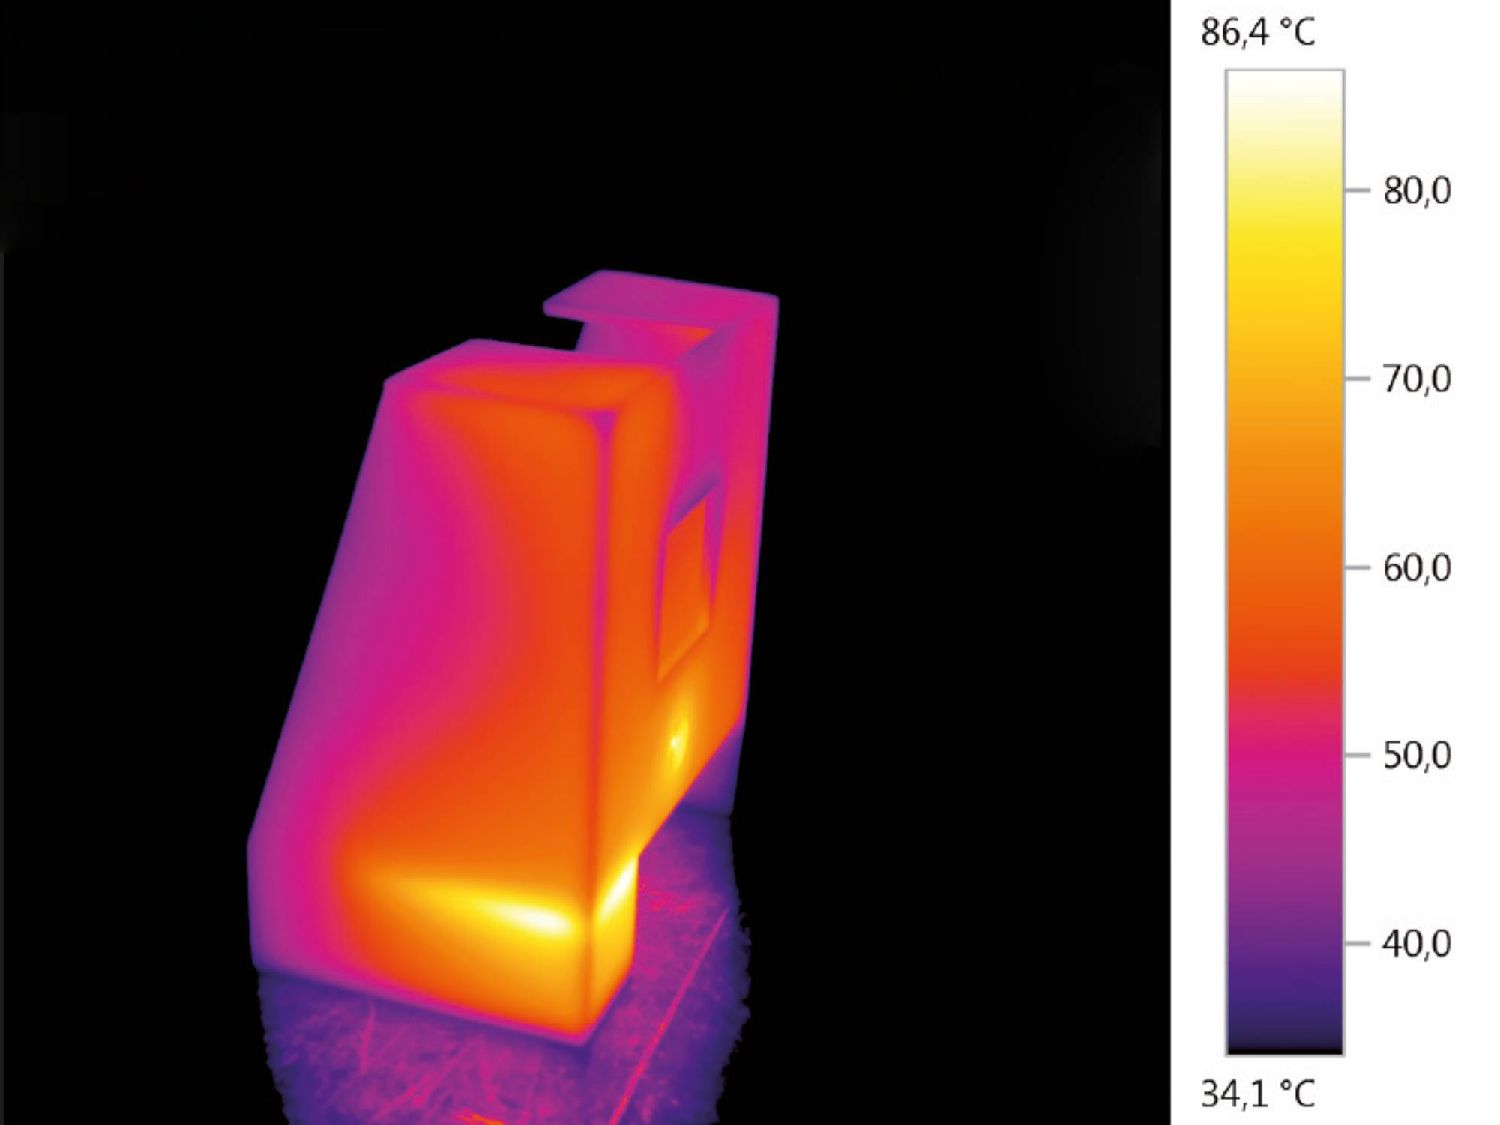 Thermal image of a plastic component